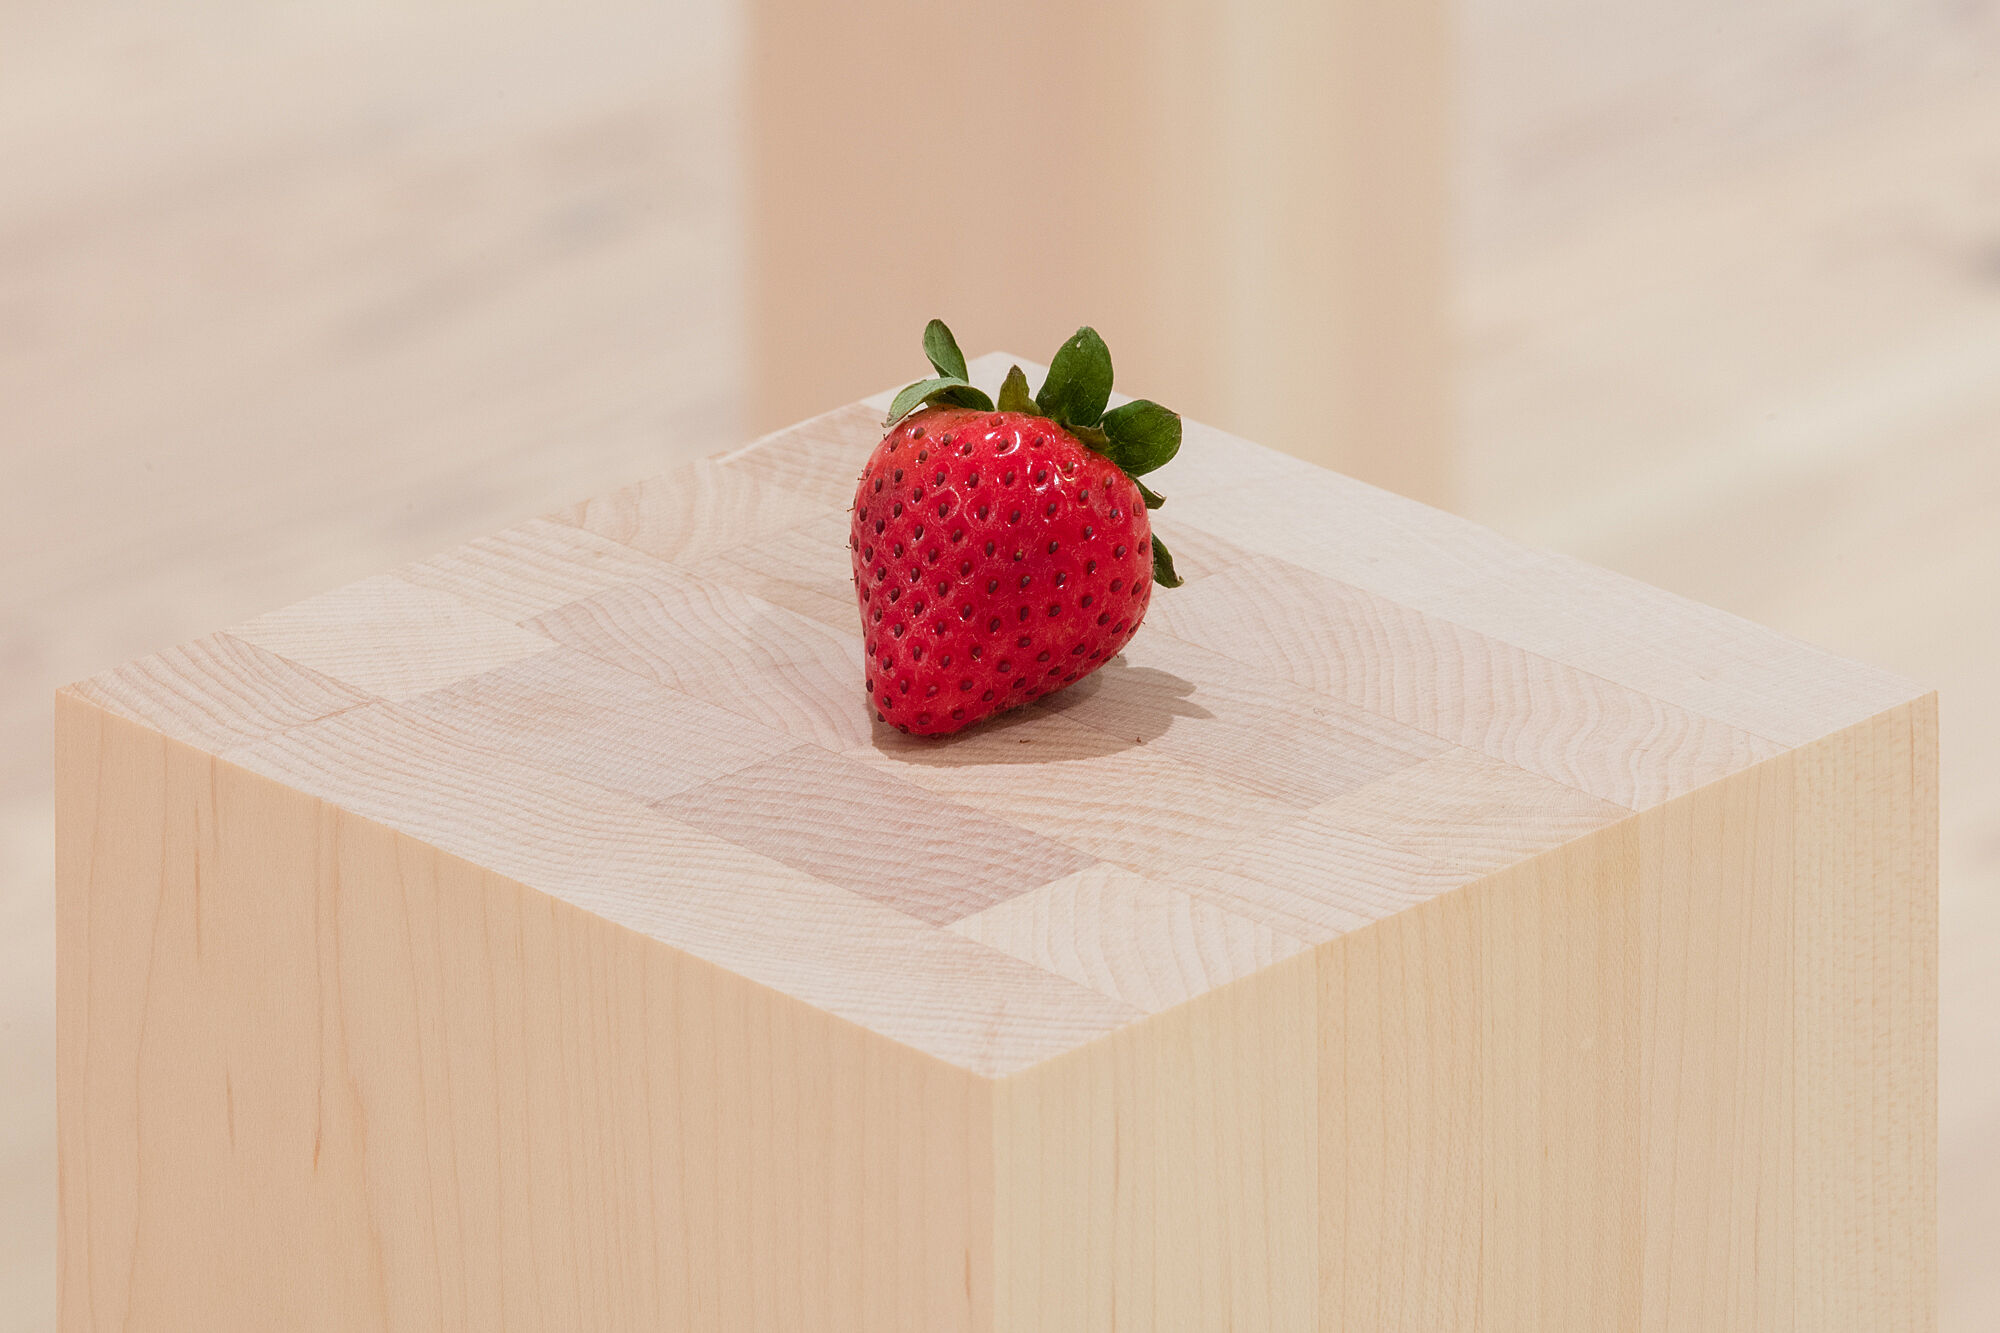 A photo of a strawberry on a plinth.